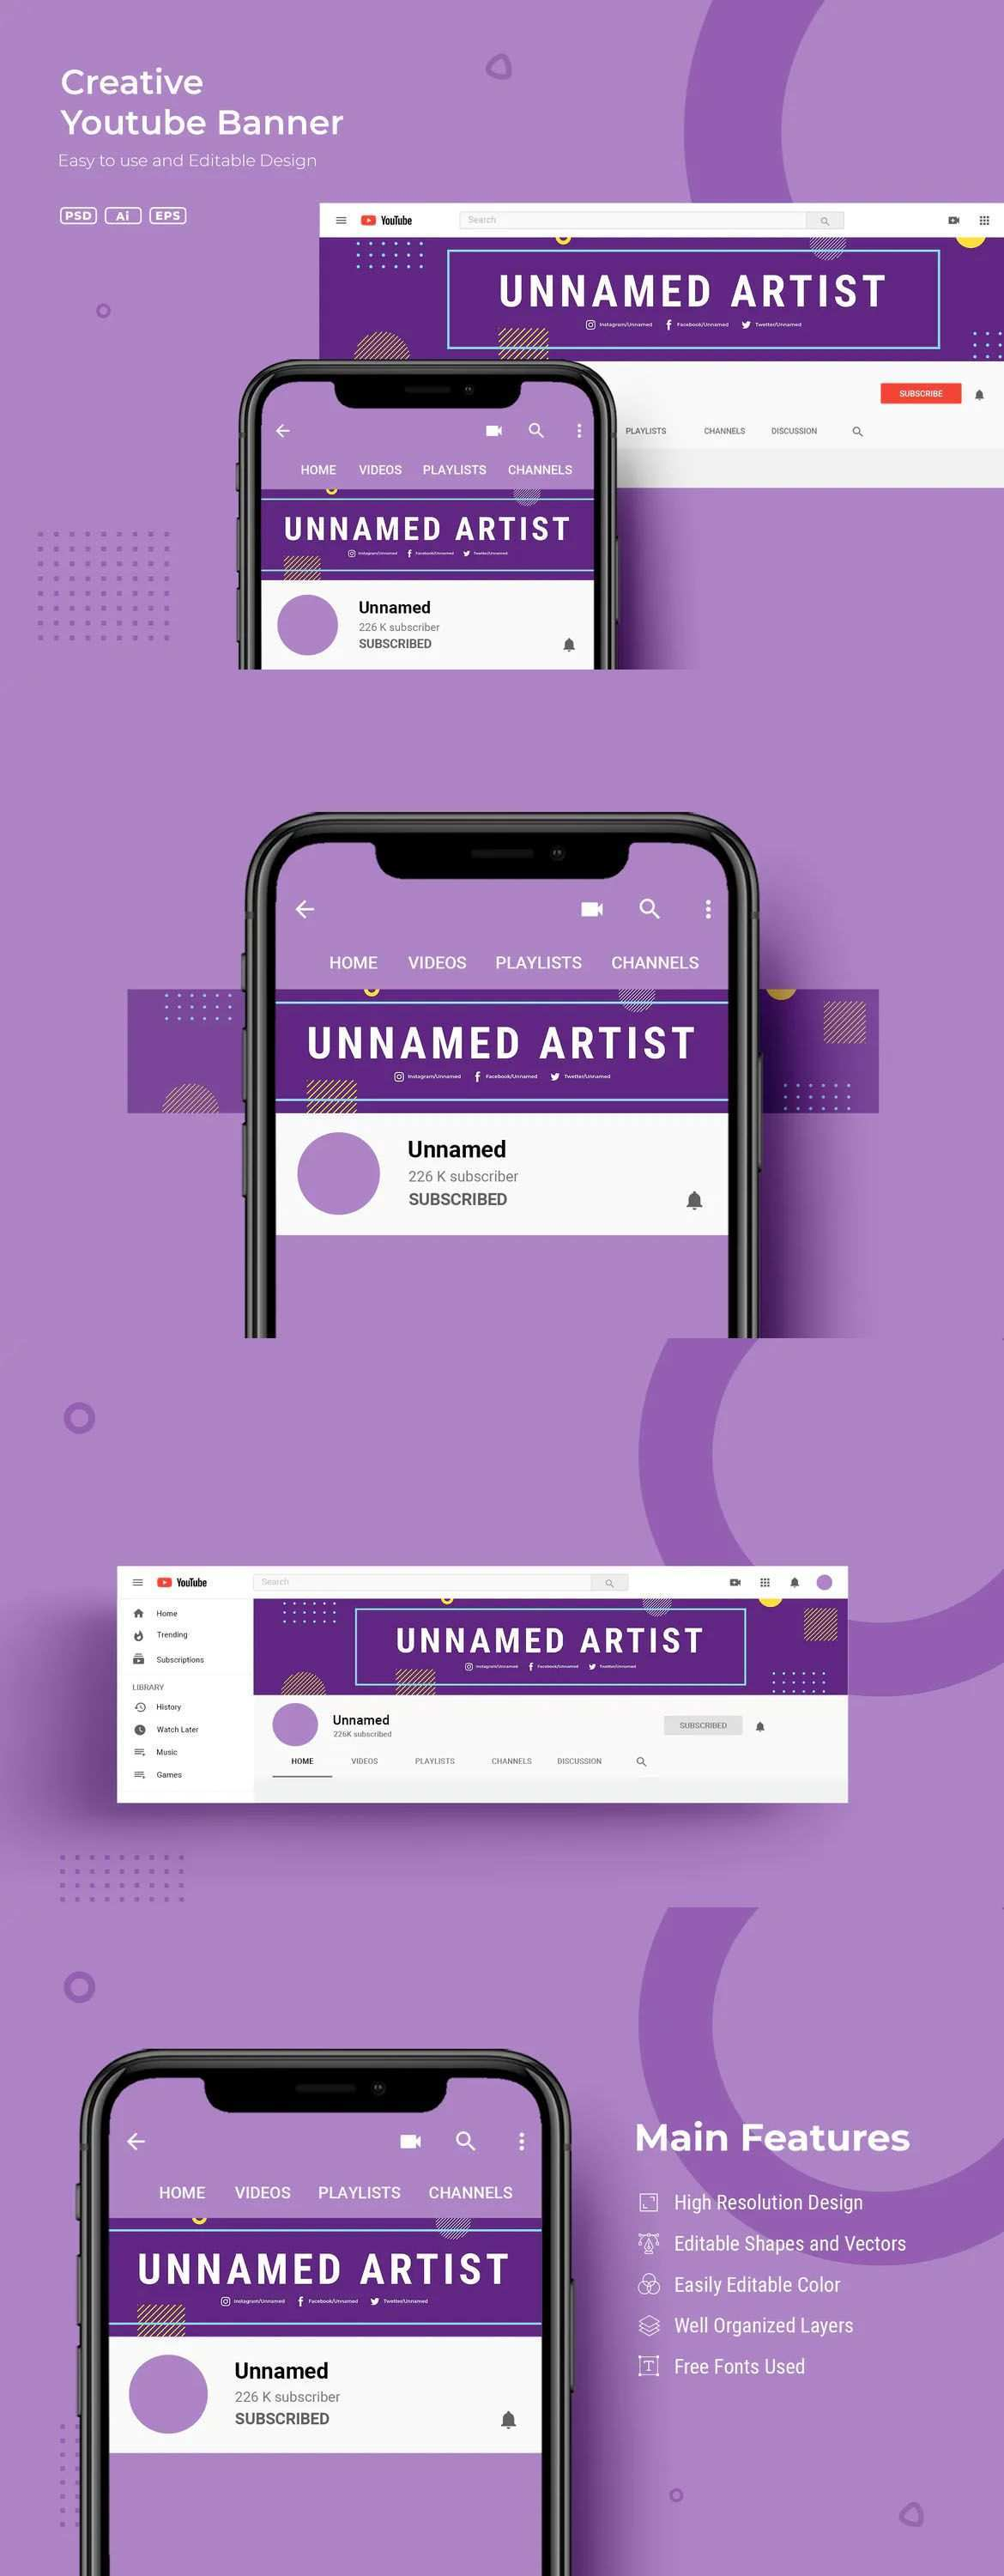 Creative Youtube Banner Template In 2020 Youtube Banner Template Youtube Banner Design Youtube Banners